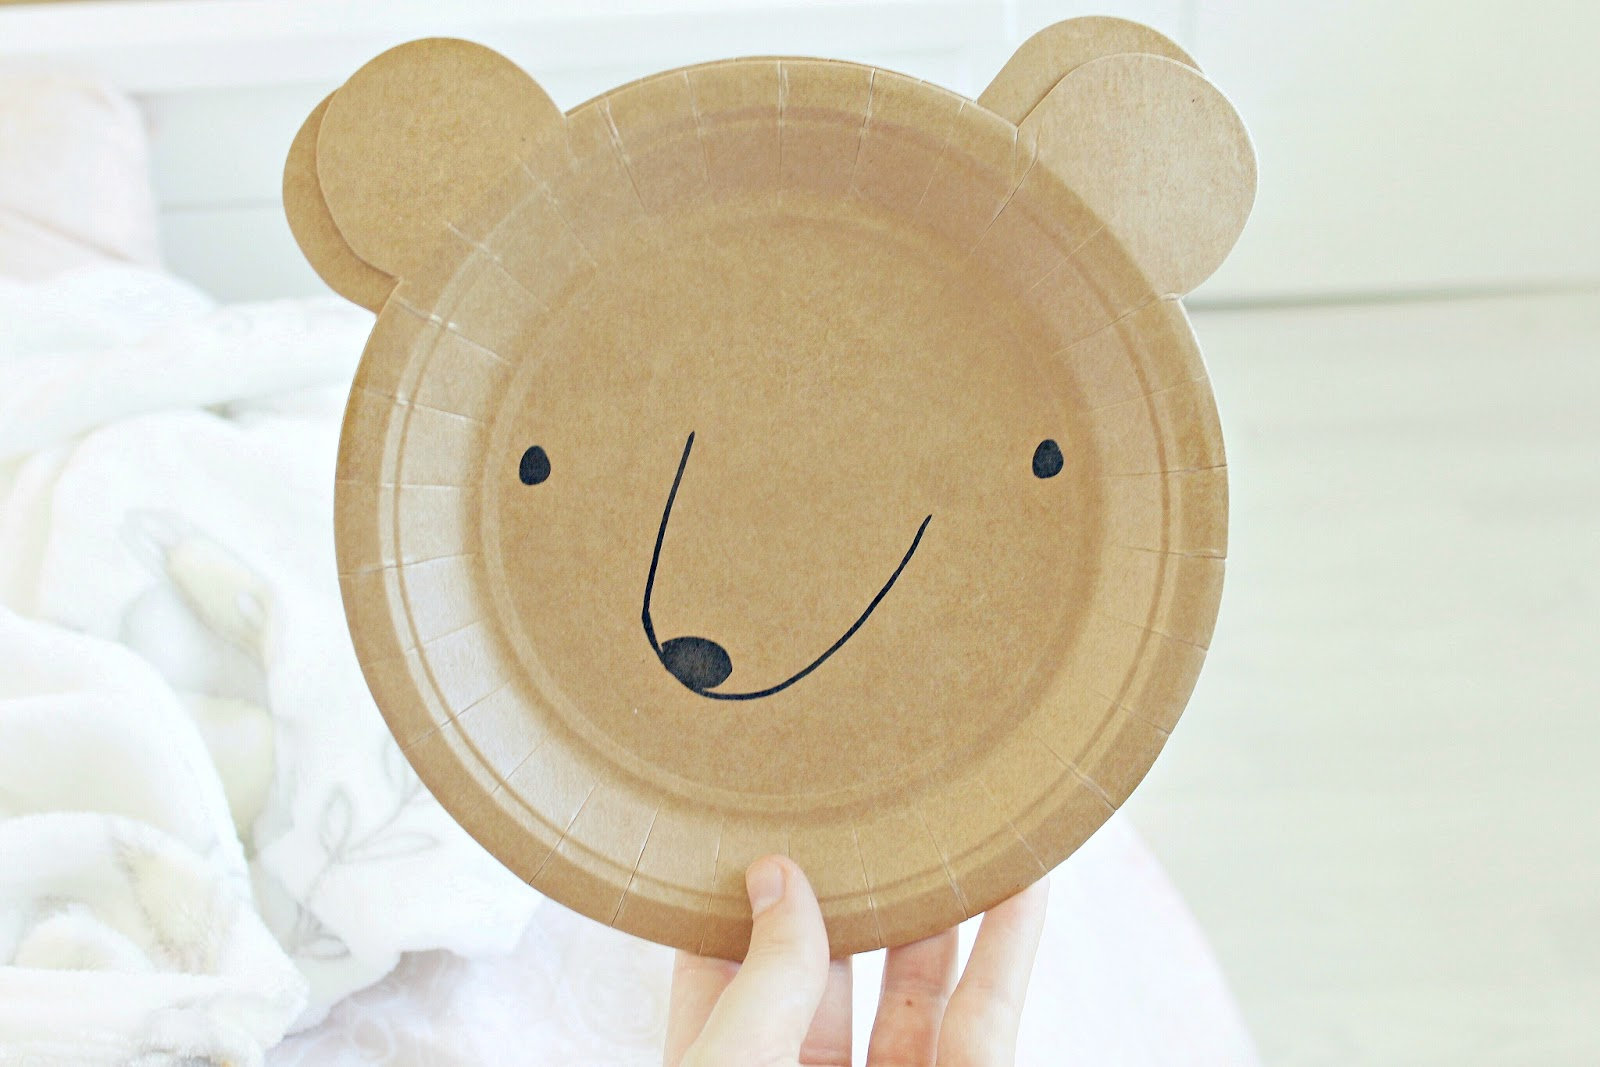 Shabby chic boy party ideas, bear themed party